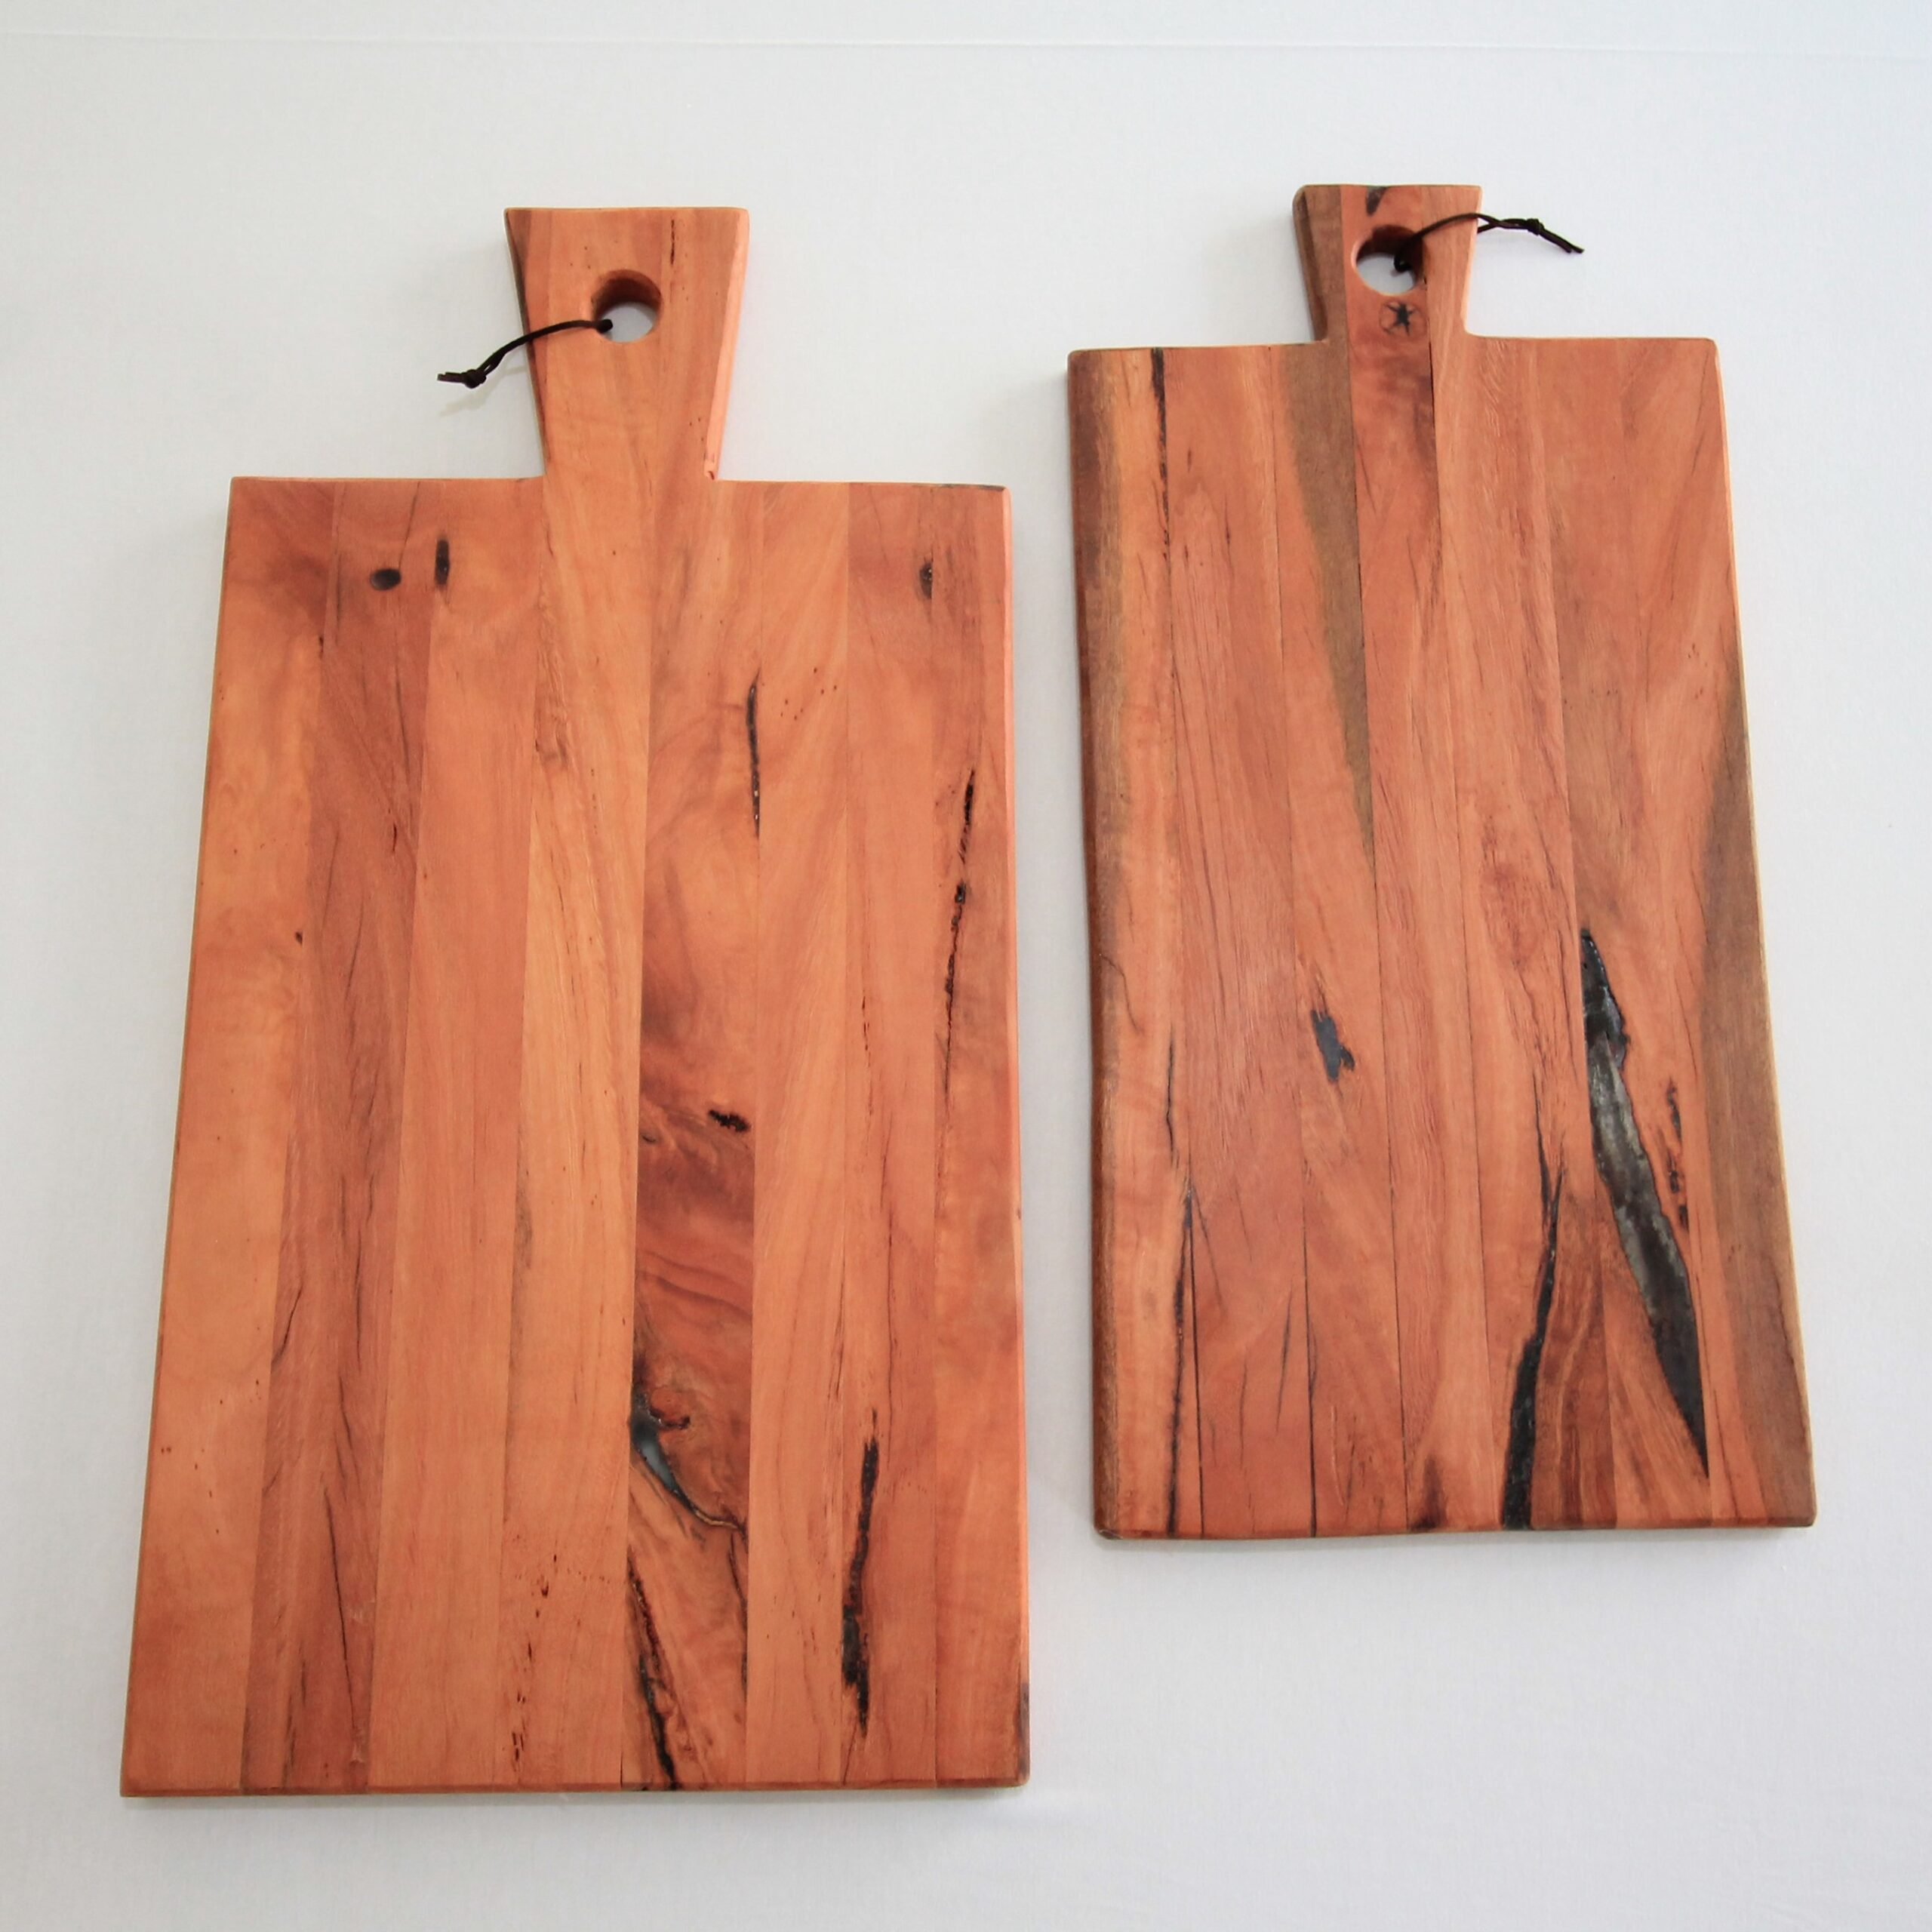 Blue gum serving boards and chopping boards